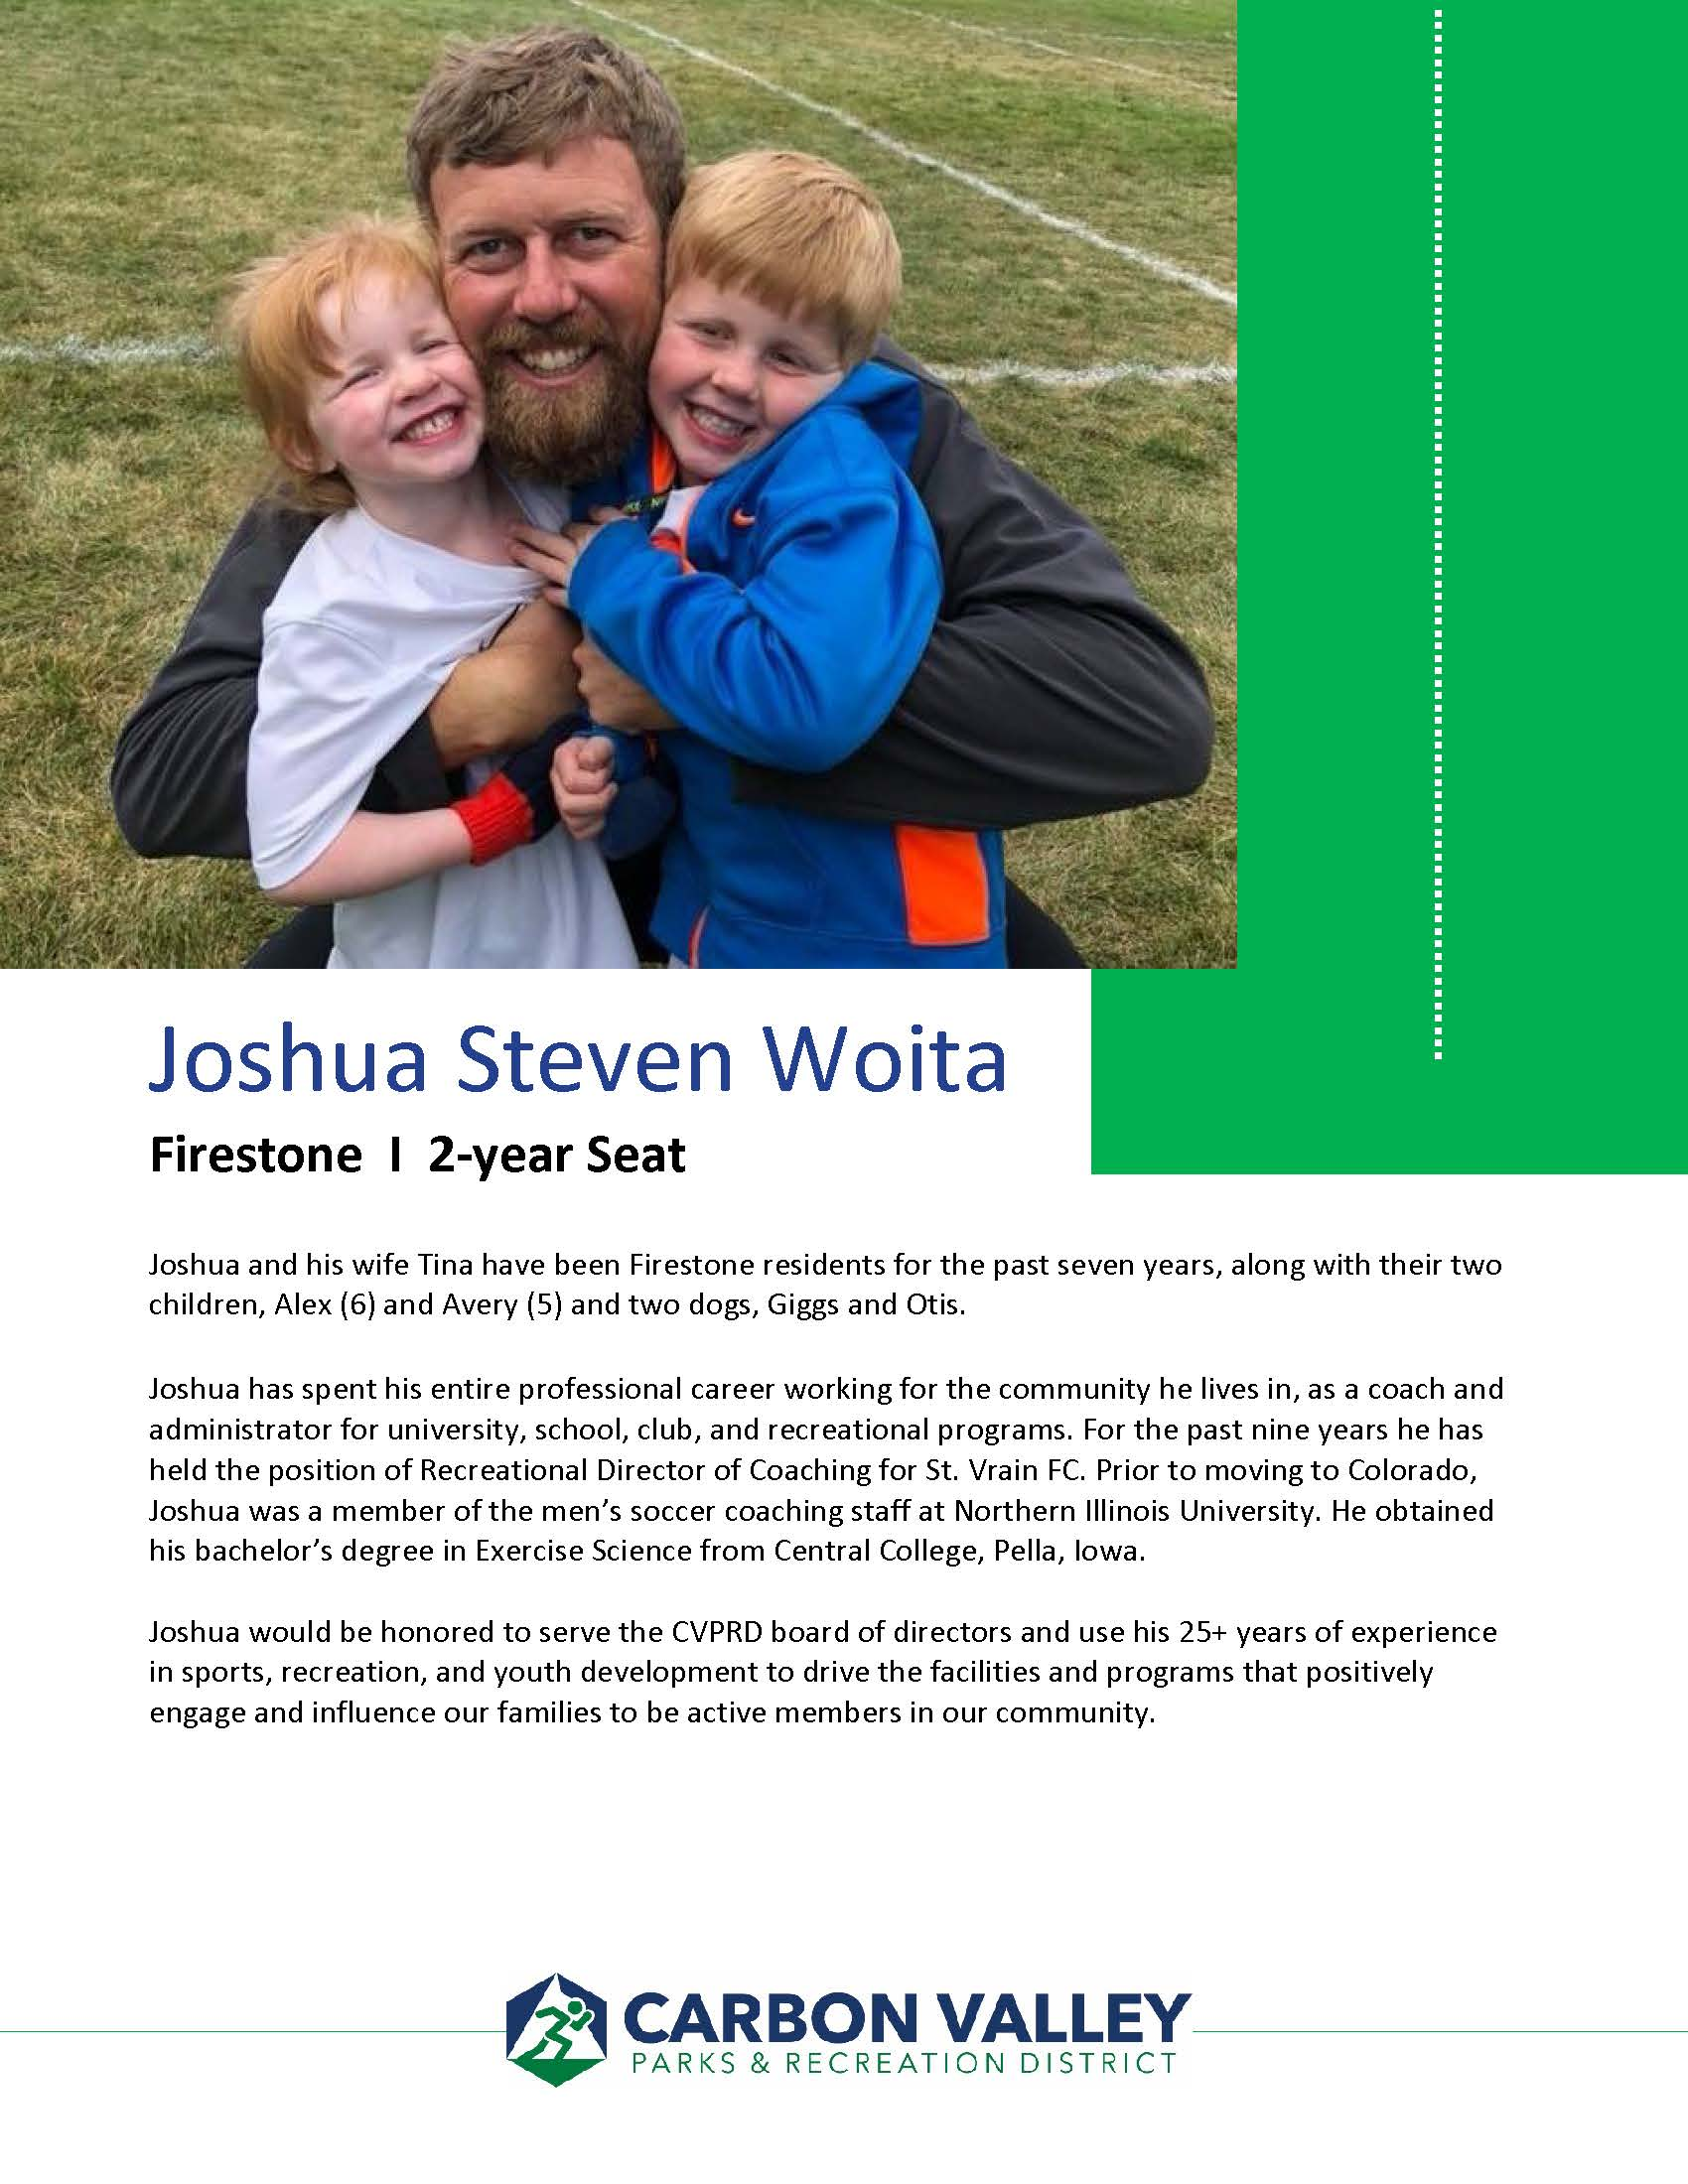 Joshua Woita biography and photo of he and his two young boys.